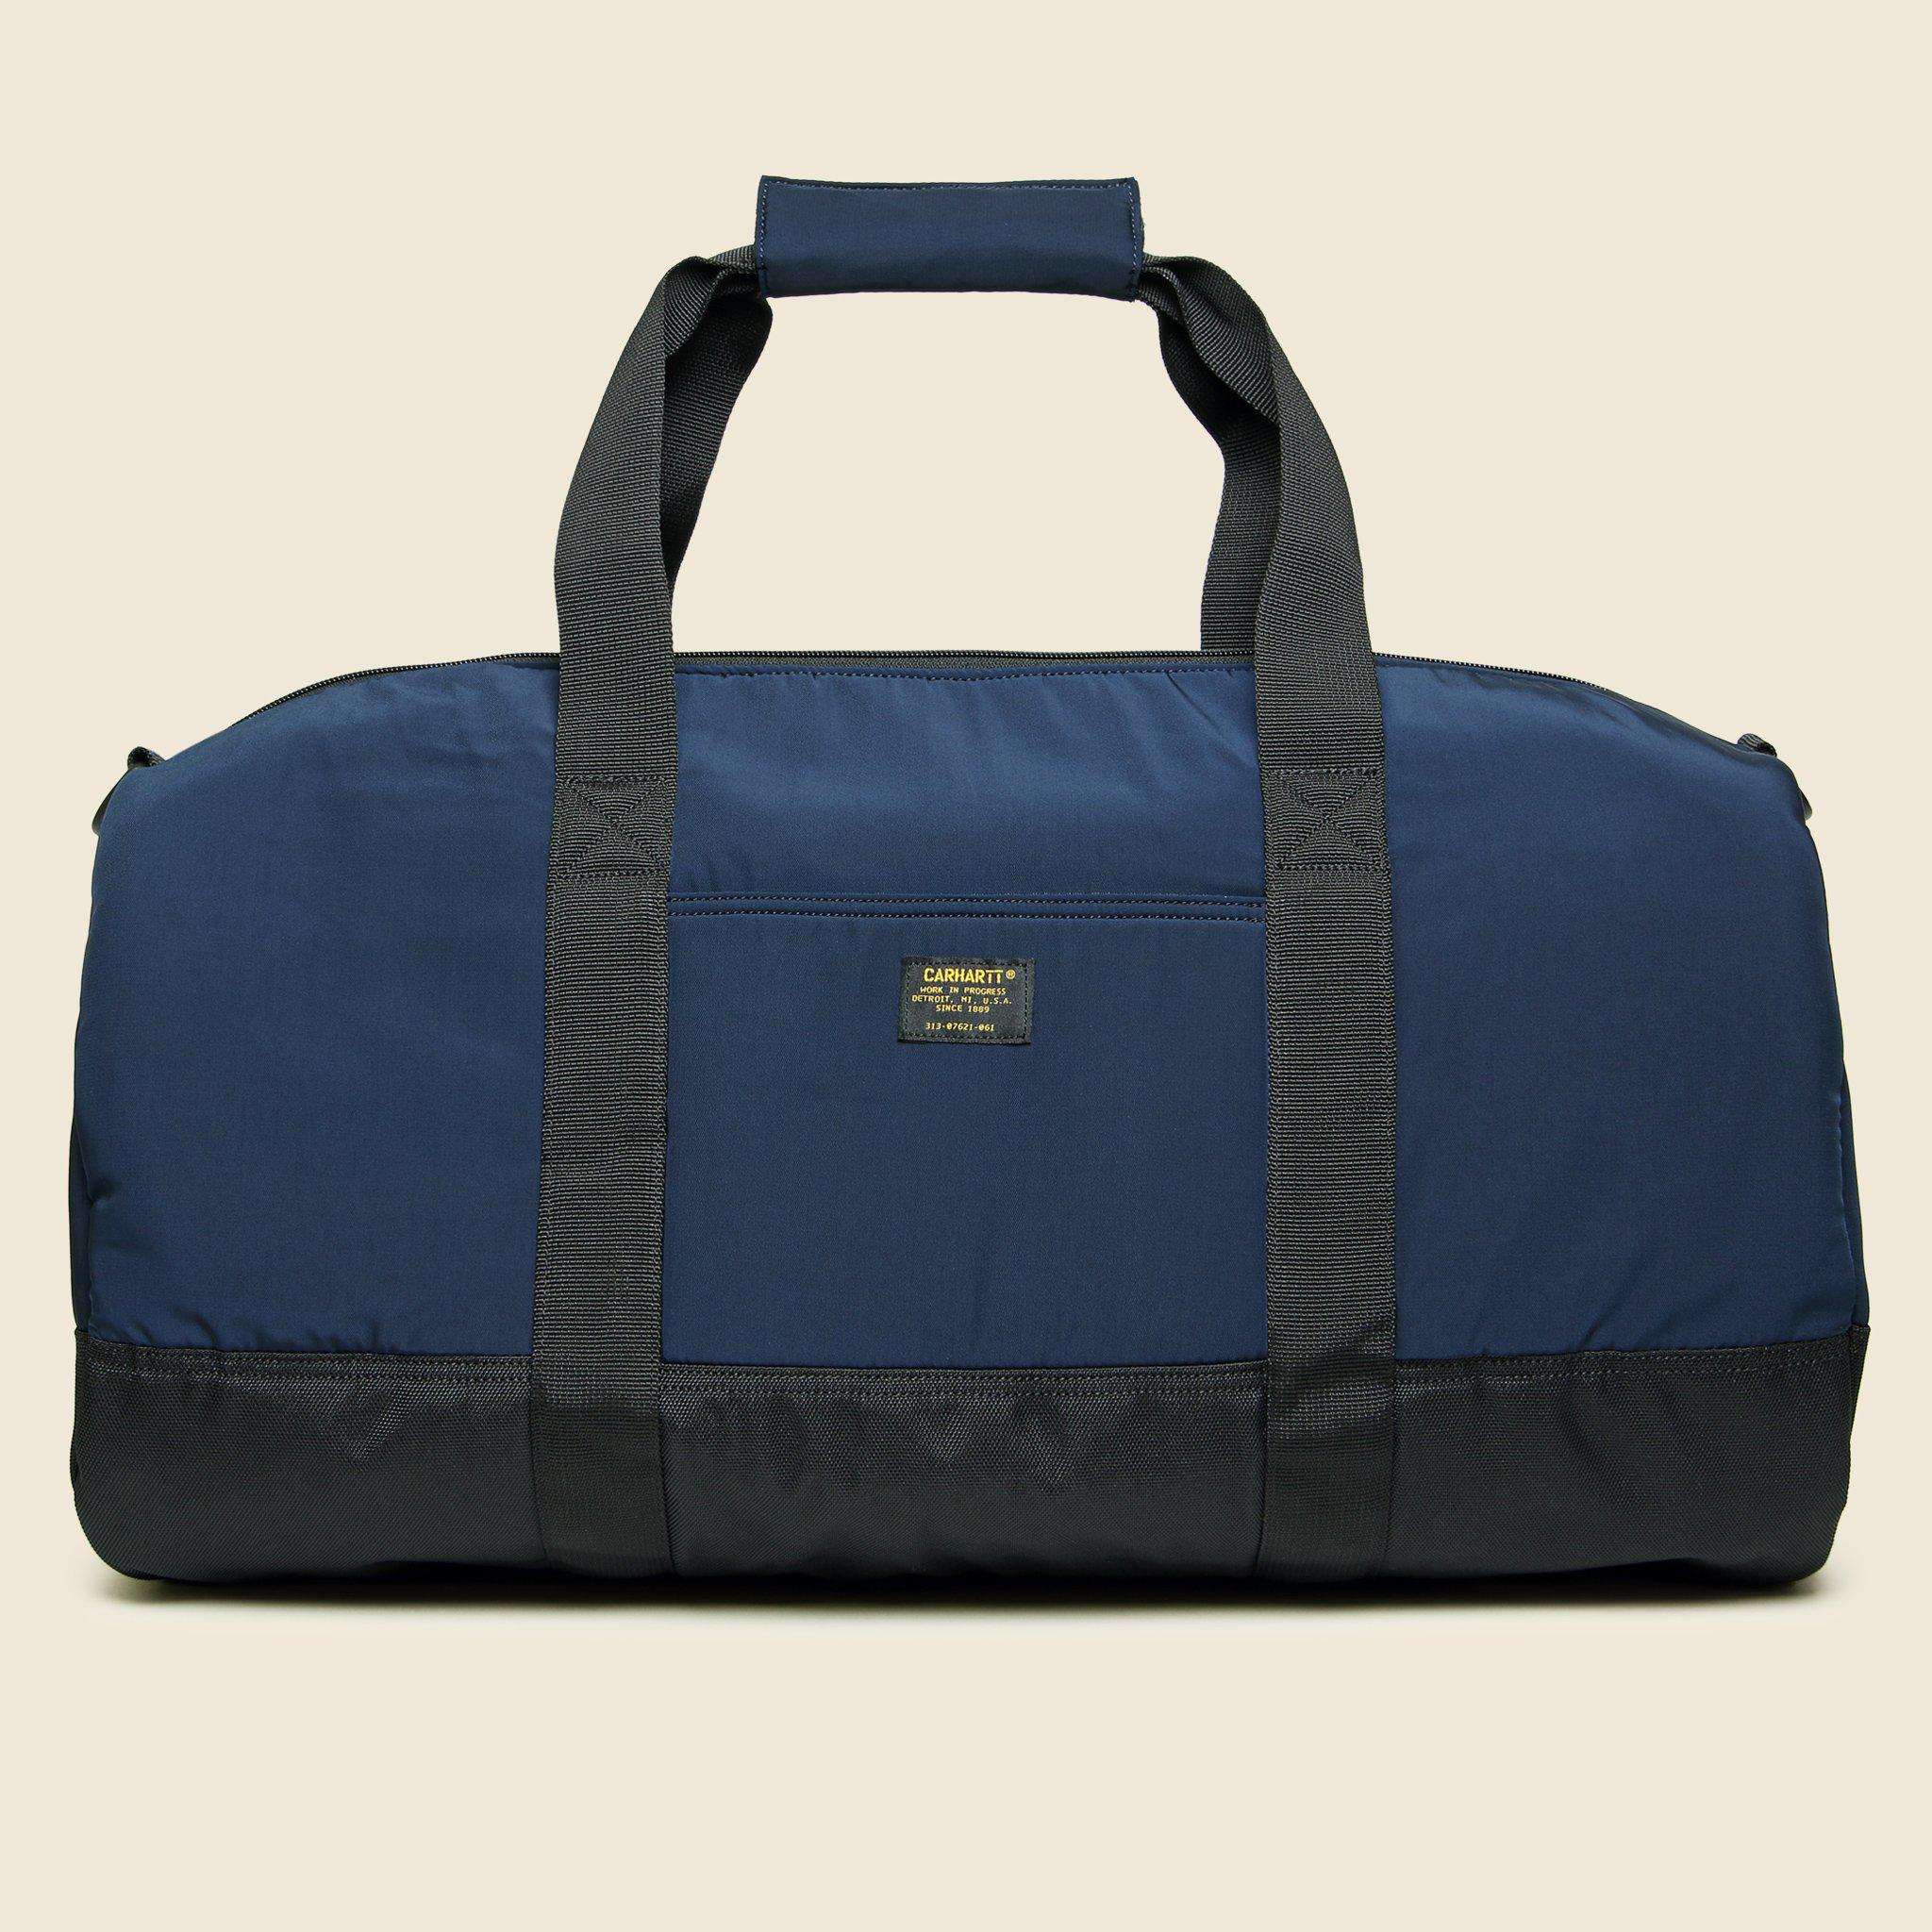 d221f94e8a Carhartt WIP Military Duffle - Navy/black in Blue for Men - Lyst